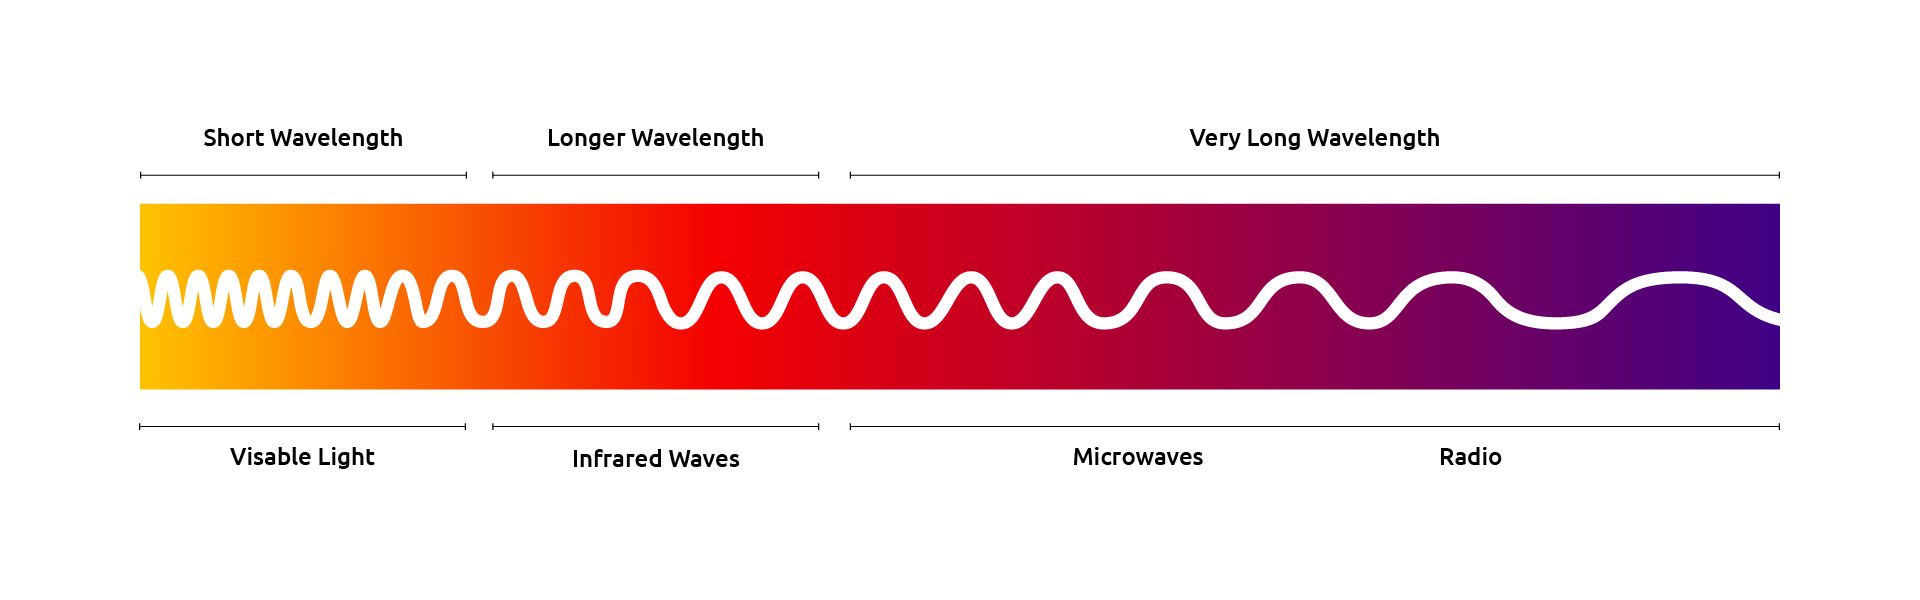 Visible Light, Infrared waves and Microwave graphic representation